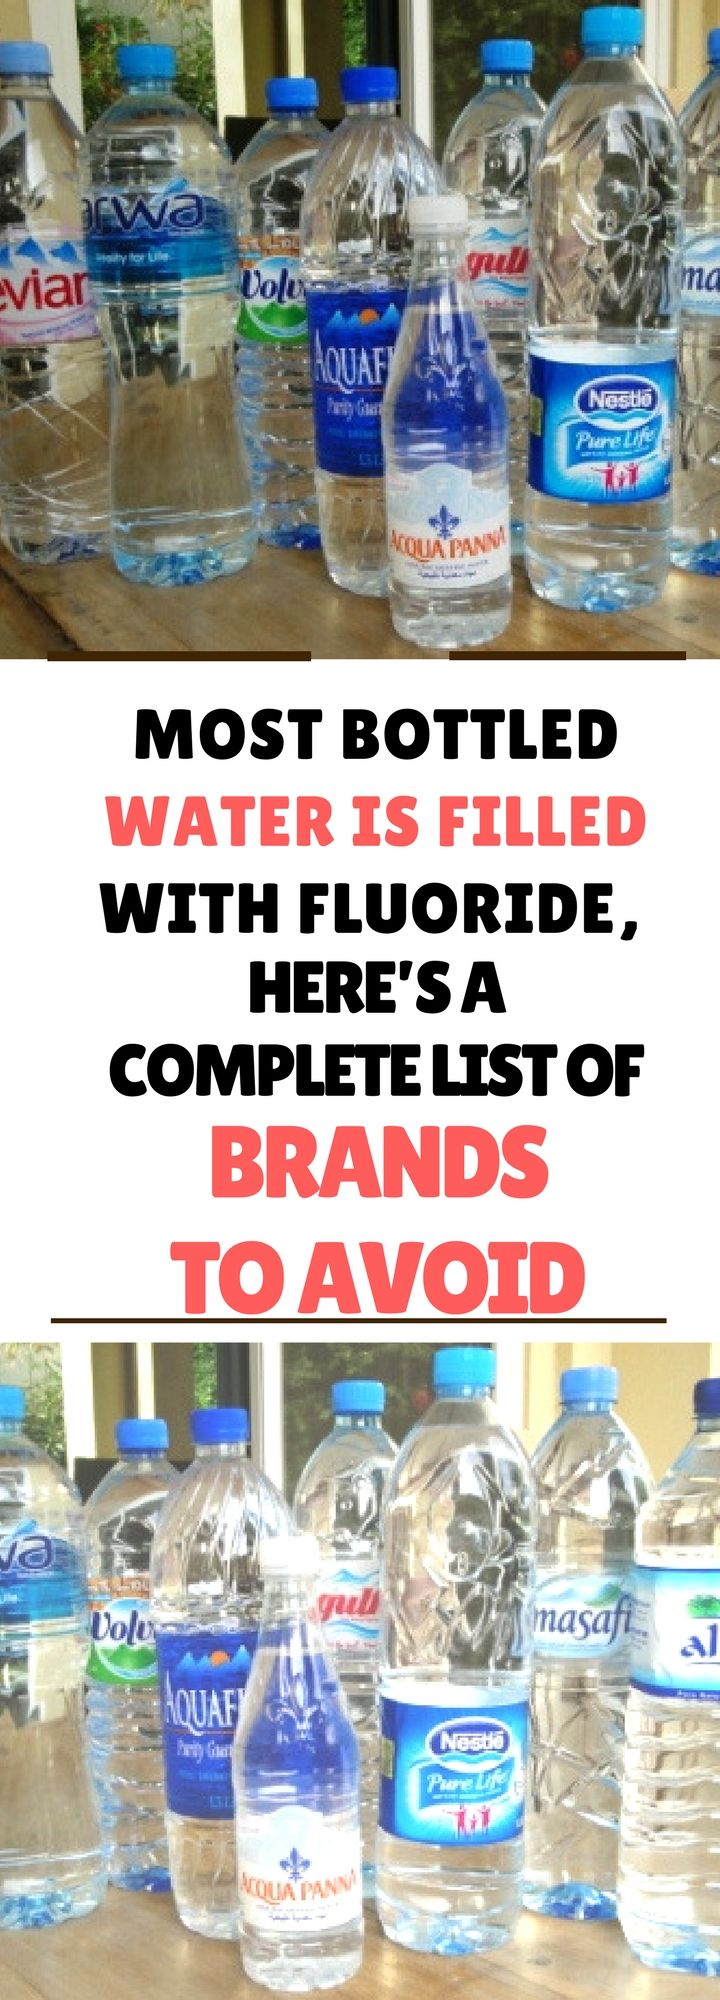 Most Bottled Water is Filled With Fluoride, Here's a Complete List of Brands to Avoidd. Need to know.!. Read this.